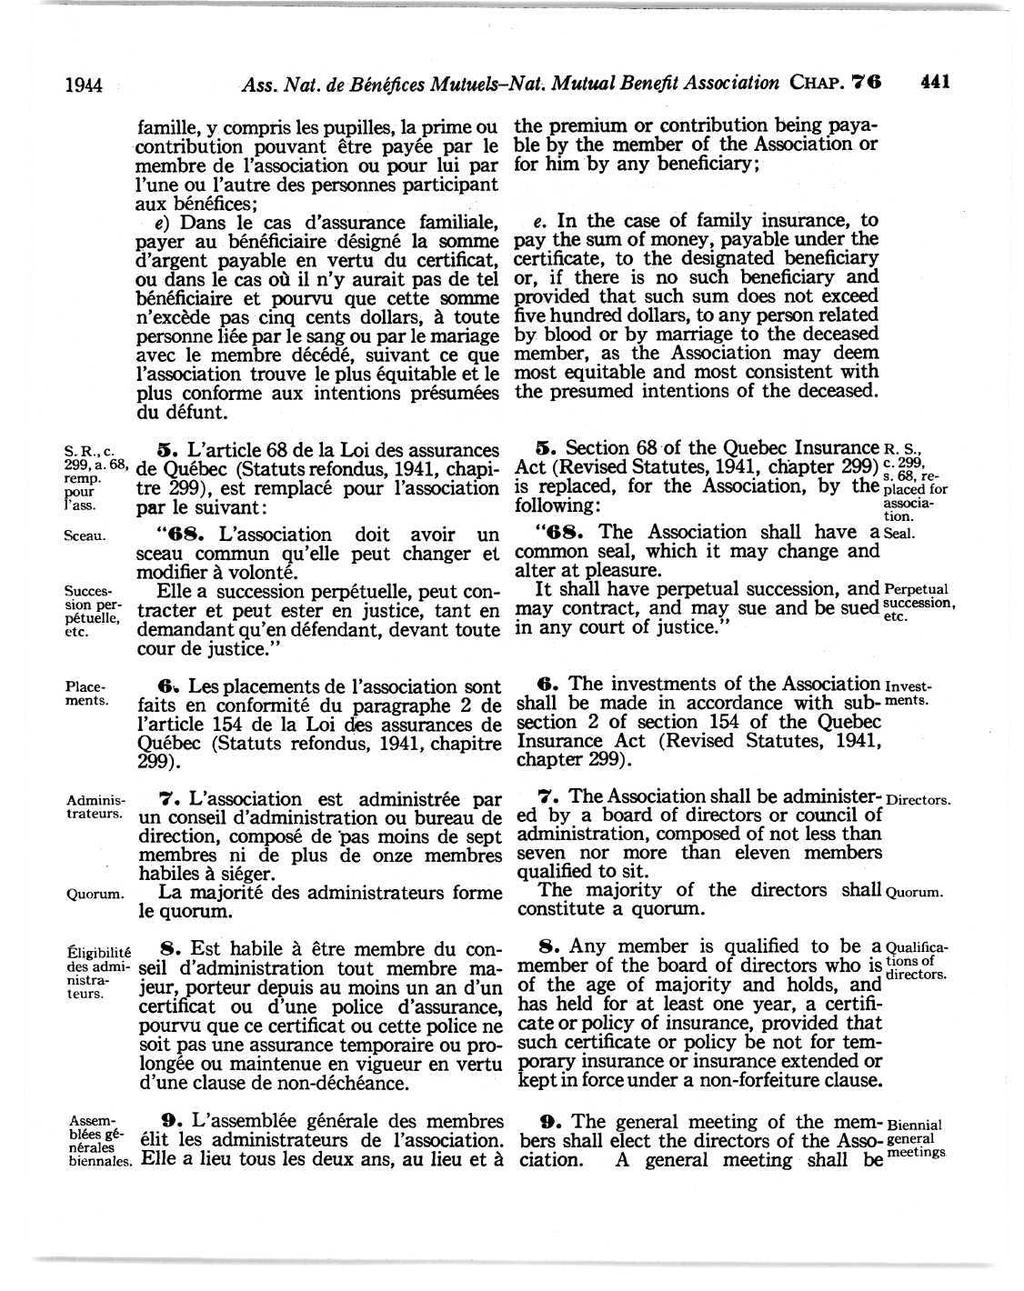 1944 Ass. Nat. de Bénéfices Mutuels-Nat. Mutual Benefit Association CHAP. 76 441 S.R.,c. 299, a. 68, remp. pour l'ass. Sceau. Succession perpétuelle, etc. Placements. Administrateurs. Quorum.